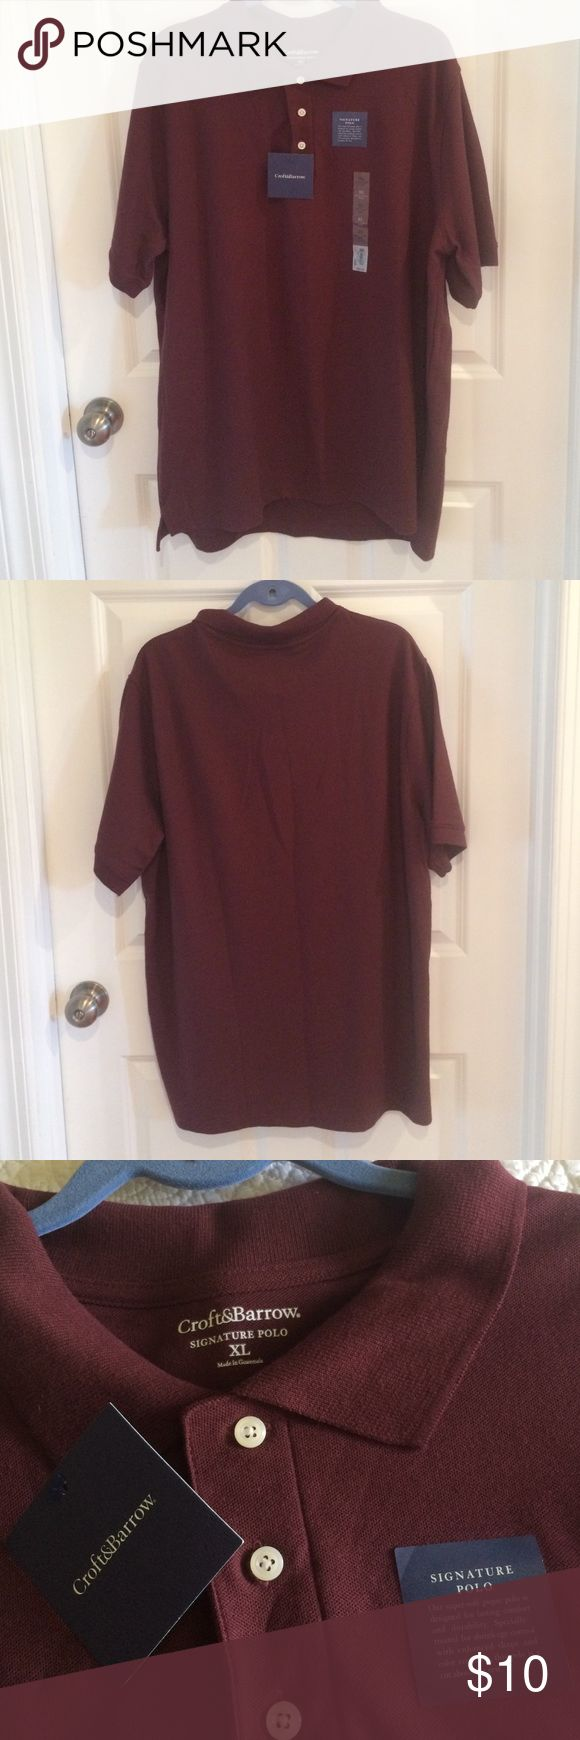 🚶🏻Croft & Barrow Signature Men's Polo Shirt. 100% cotton shirt. Machine wash & tumble dry. Brand New with tags/ Never worn.  The shirt is really burgundy not red. Croft & Barrow Shirts Casual Button Down Shirts